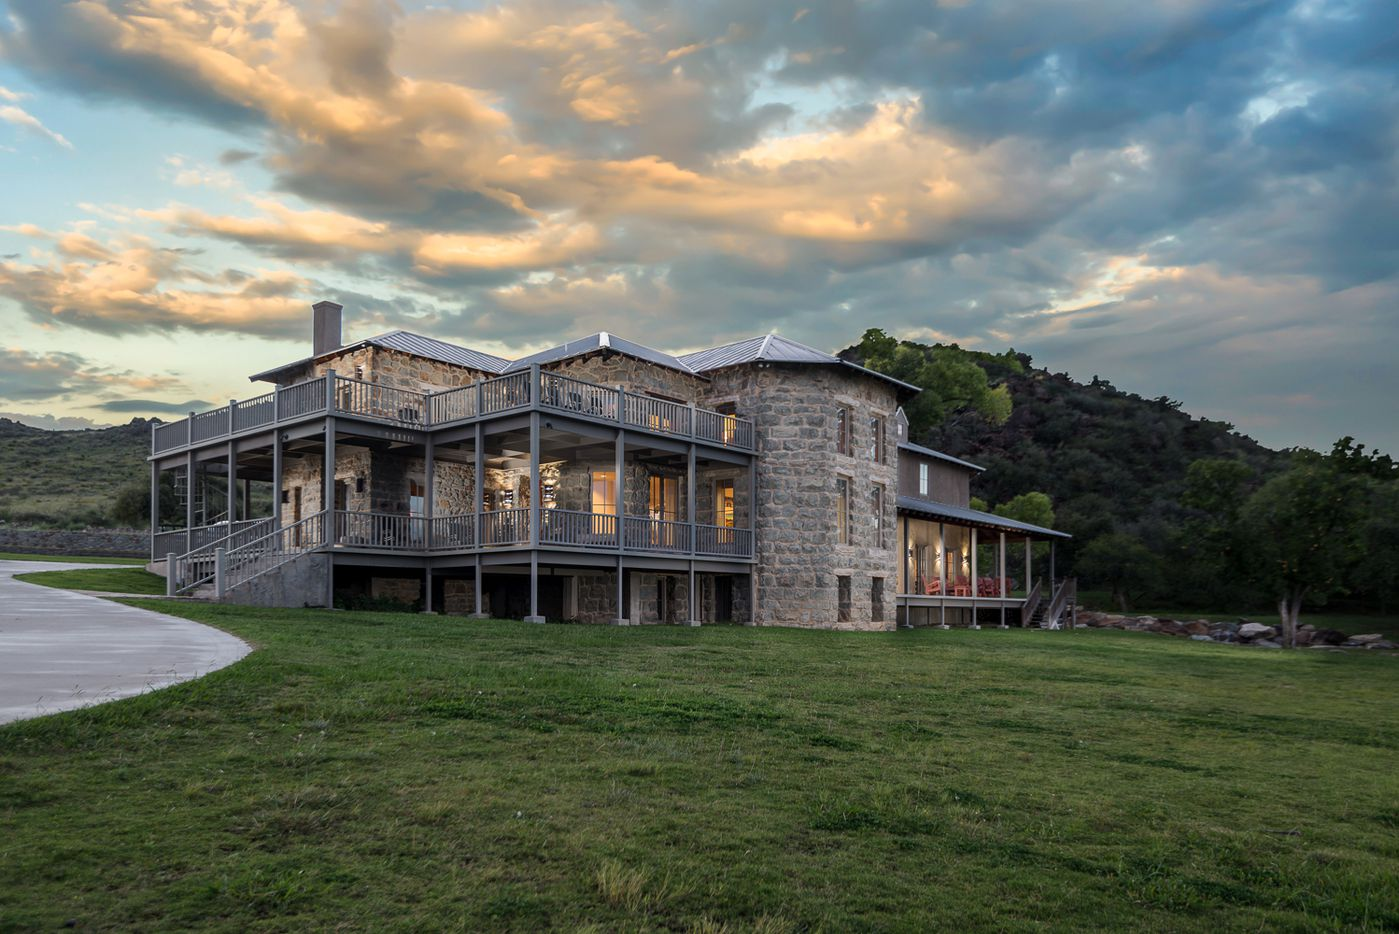 The  nearly 10,000 square-foot lodge that dates from the 1890s.